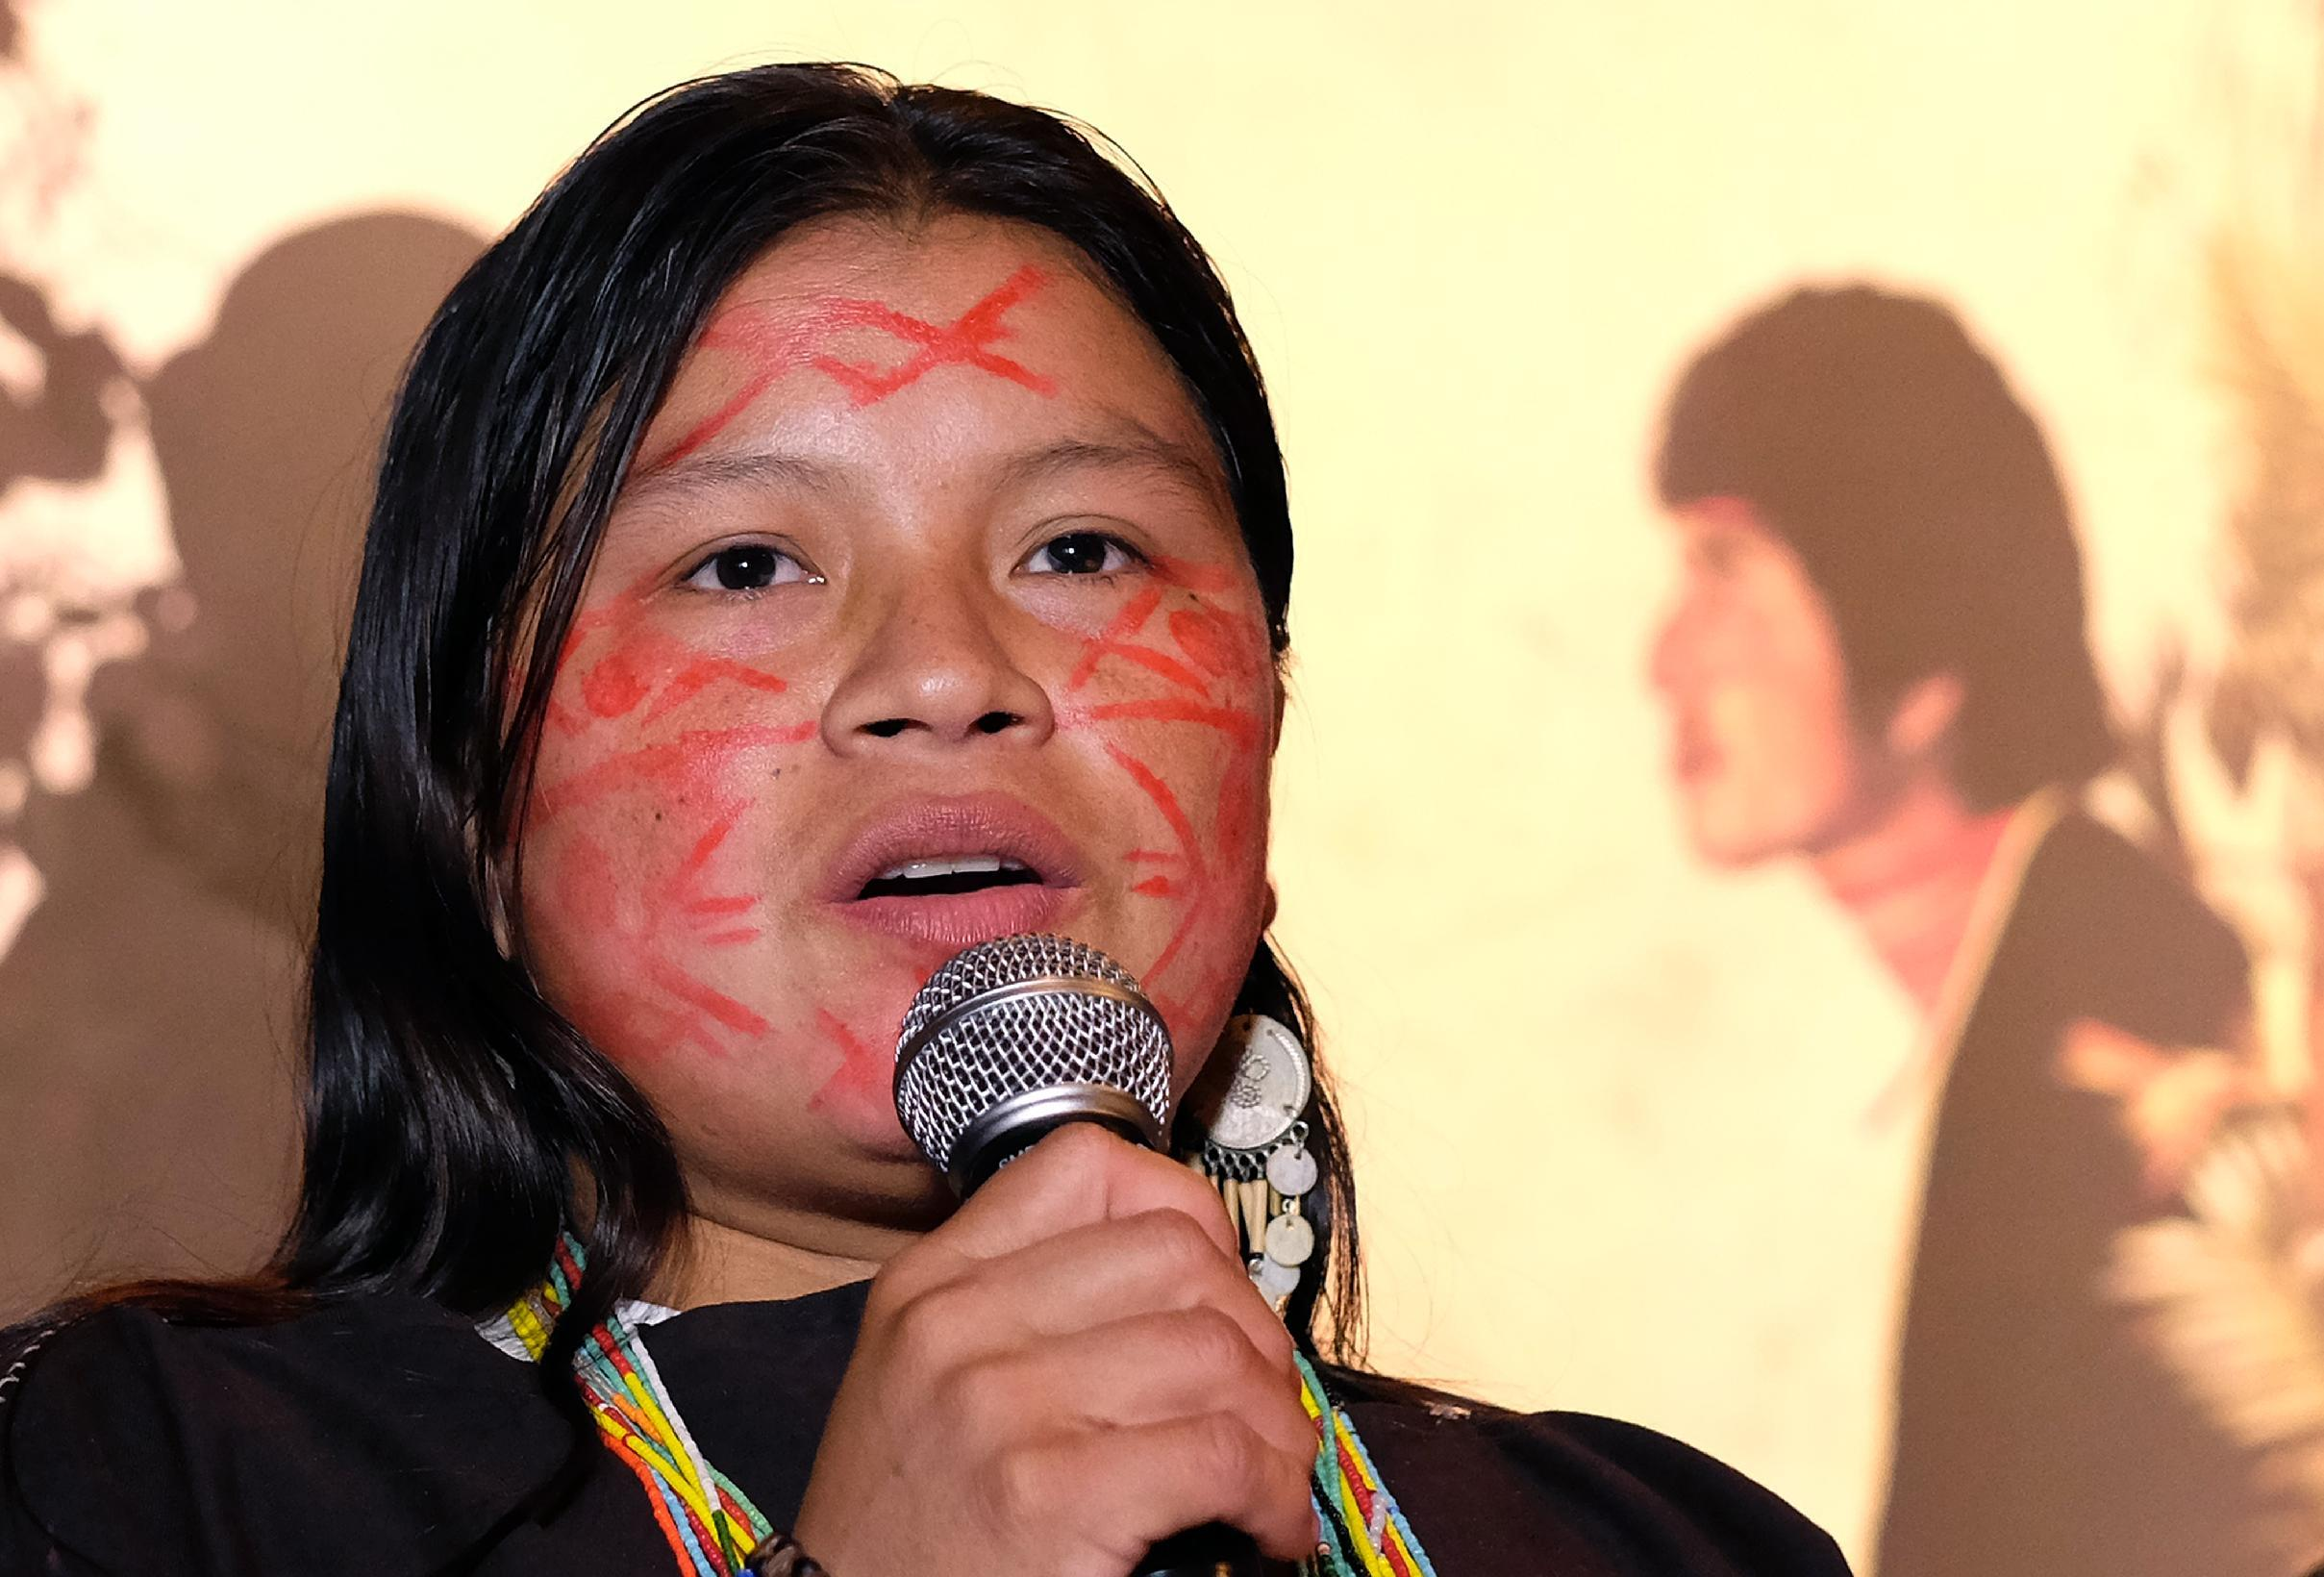 Diana Rios Rengifo, daughter of an indigenous Ashéninka leader murdered in the Peruvian Amazon in early September, speaks during a ceremony in New York on November 17, 2014 (AFP Photo/Jewel Samad)